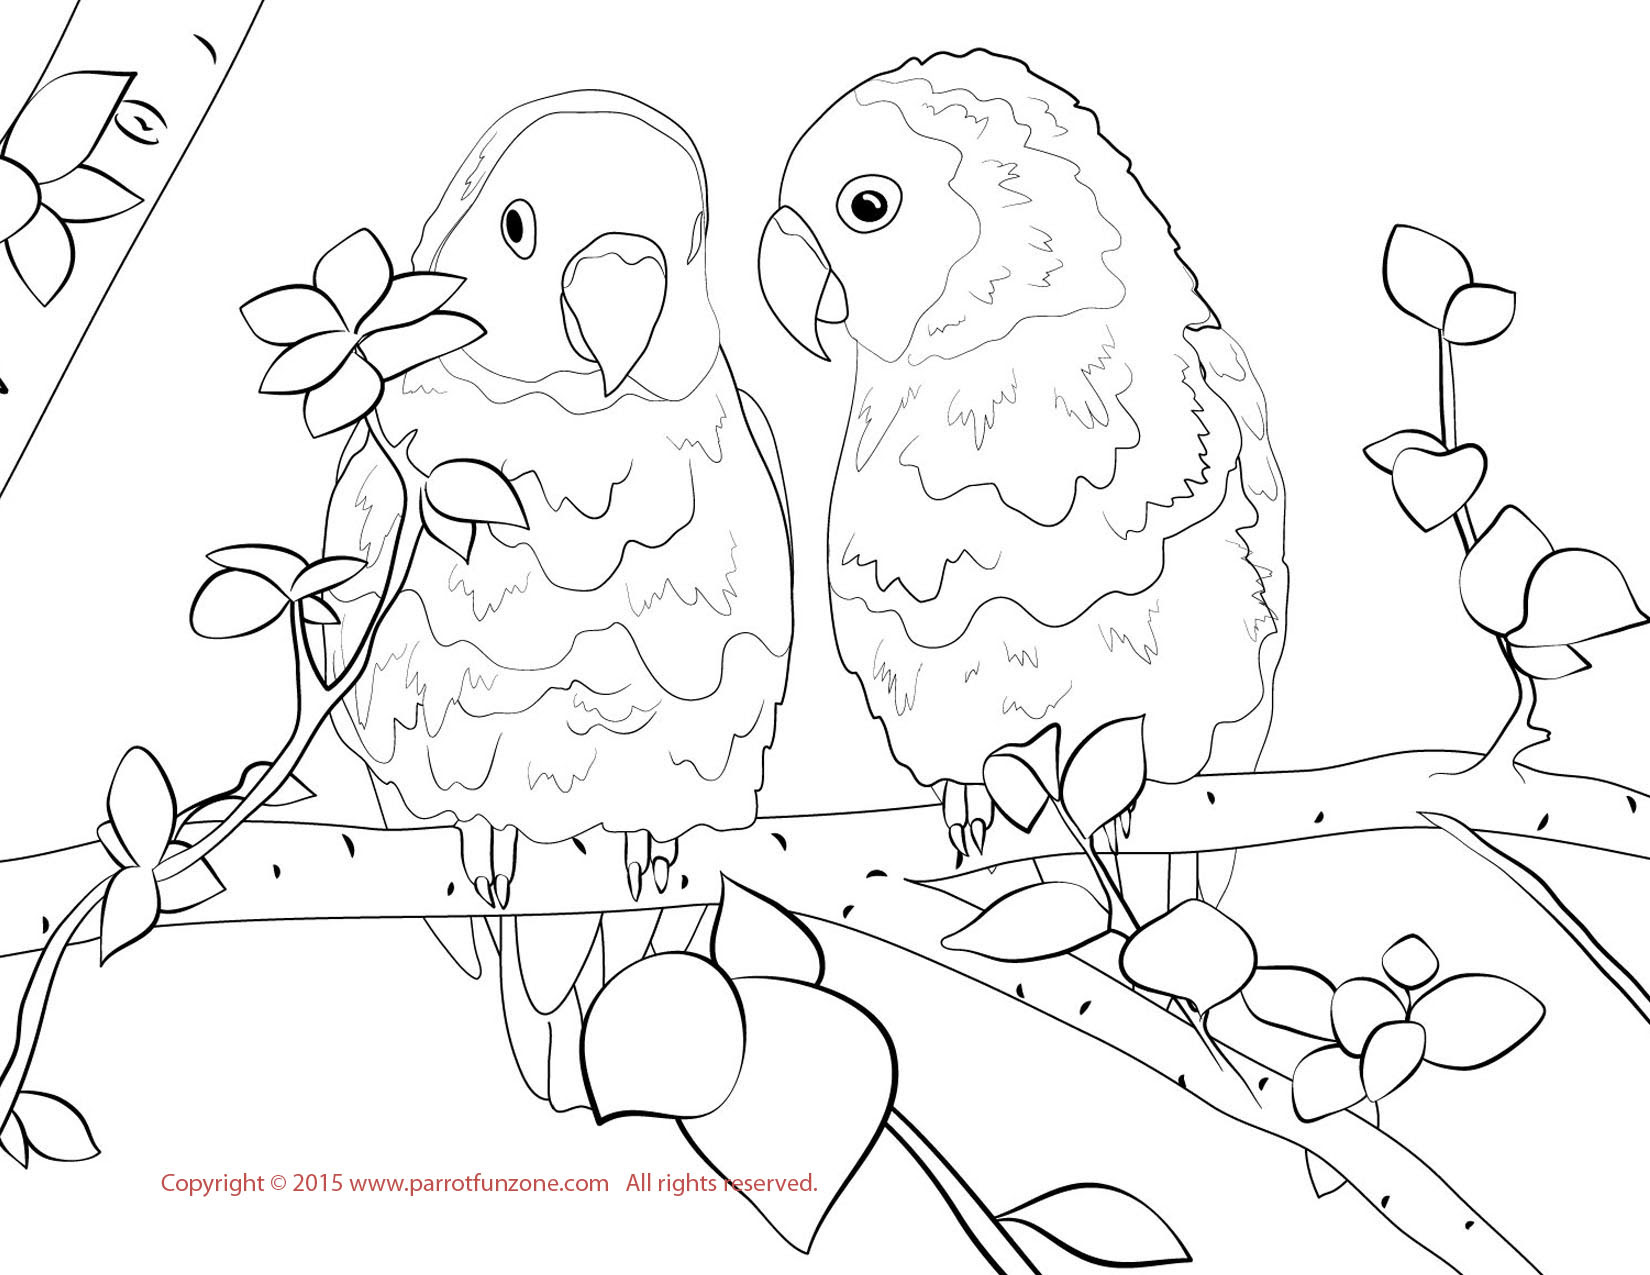 Wild Bird Coloring Pages at GetColorings.com | Free ...